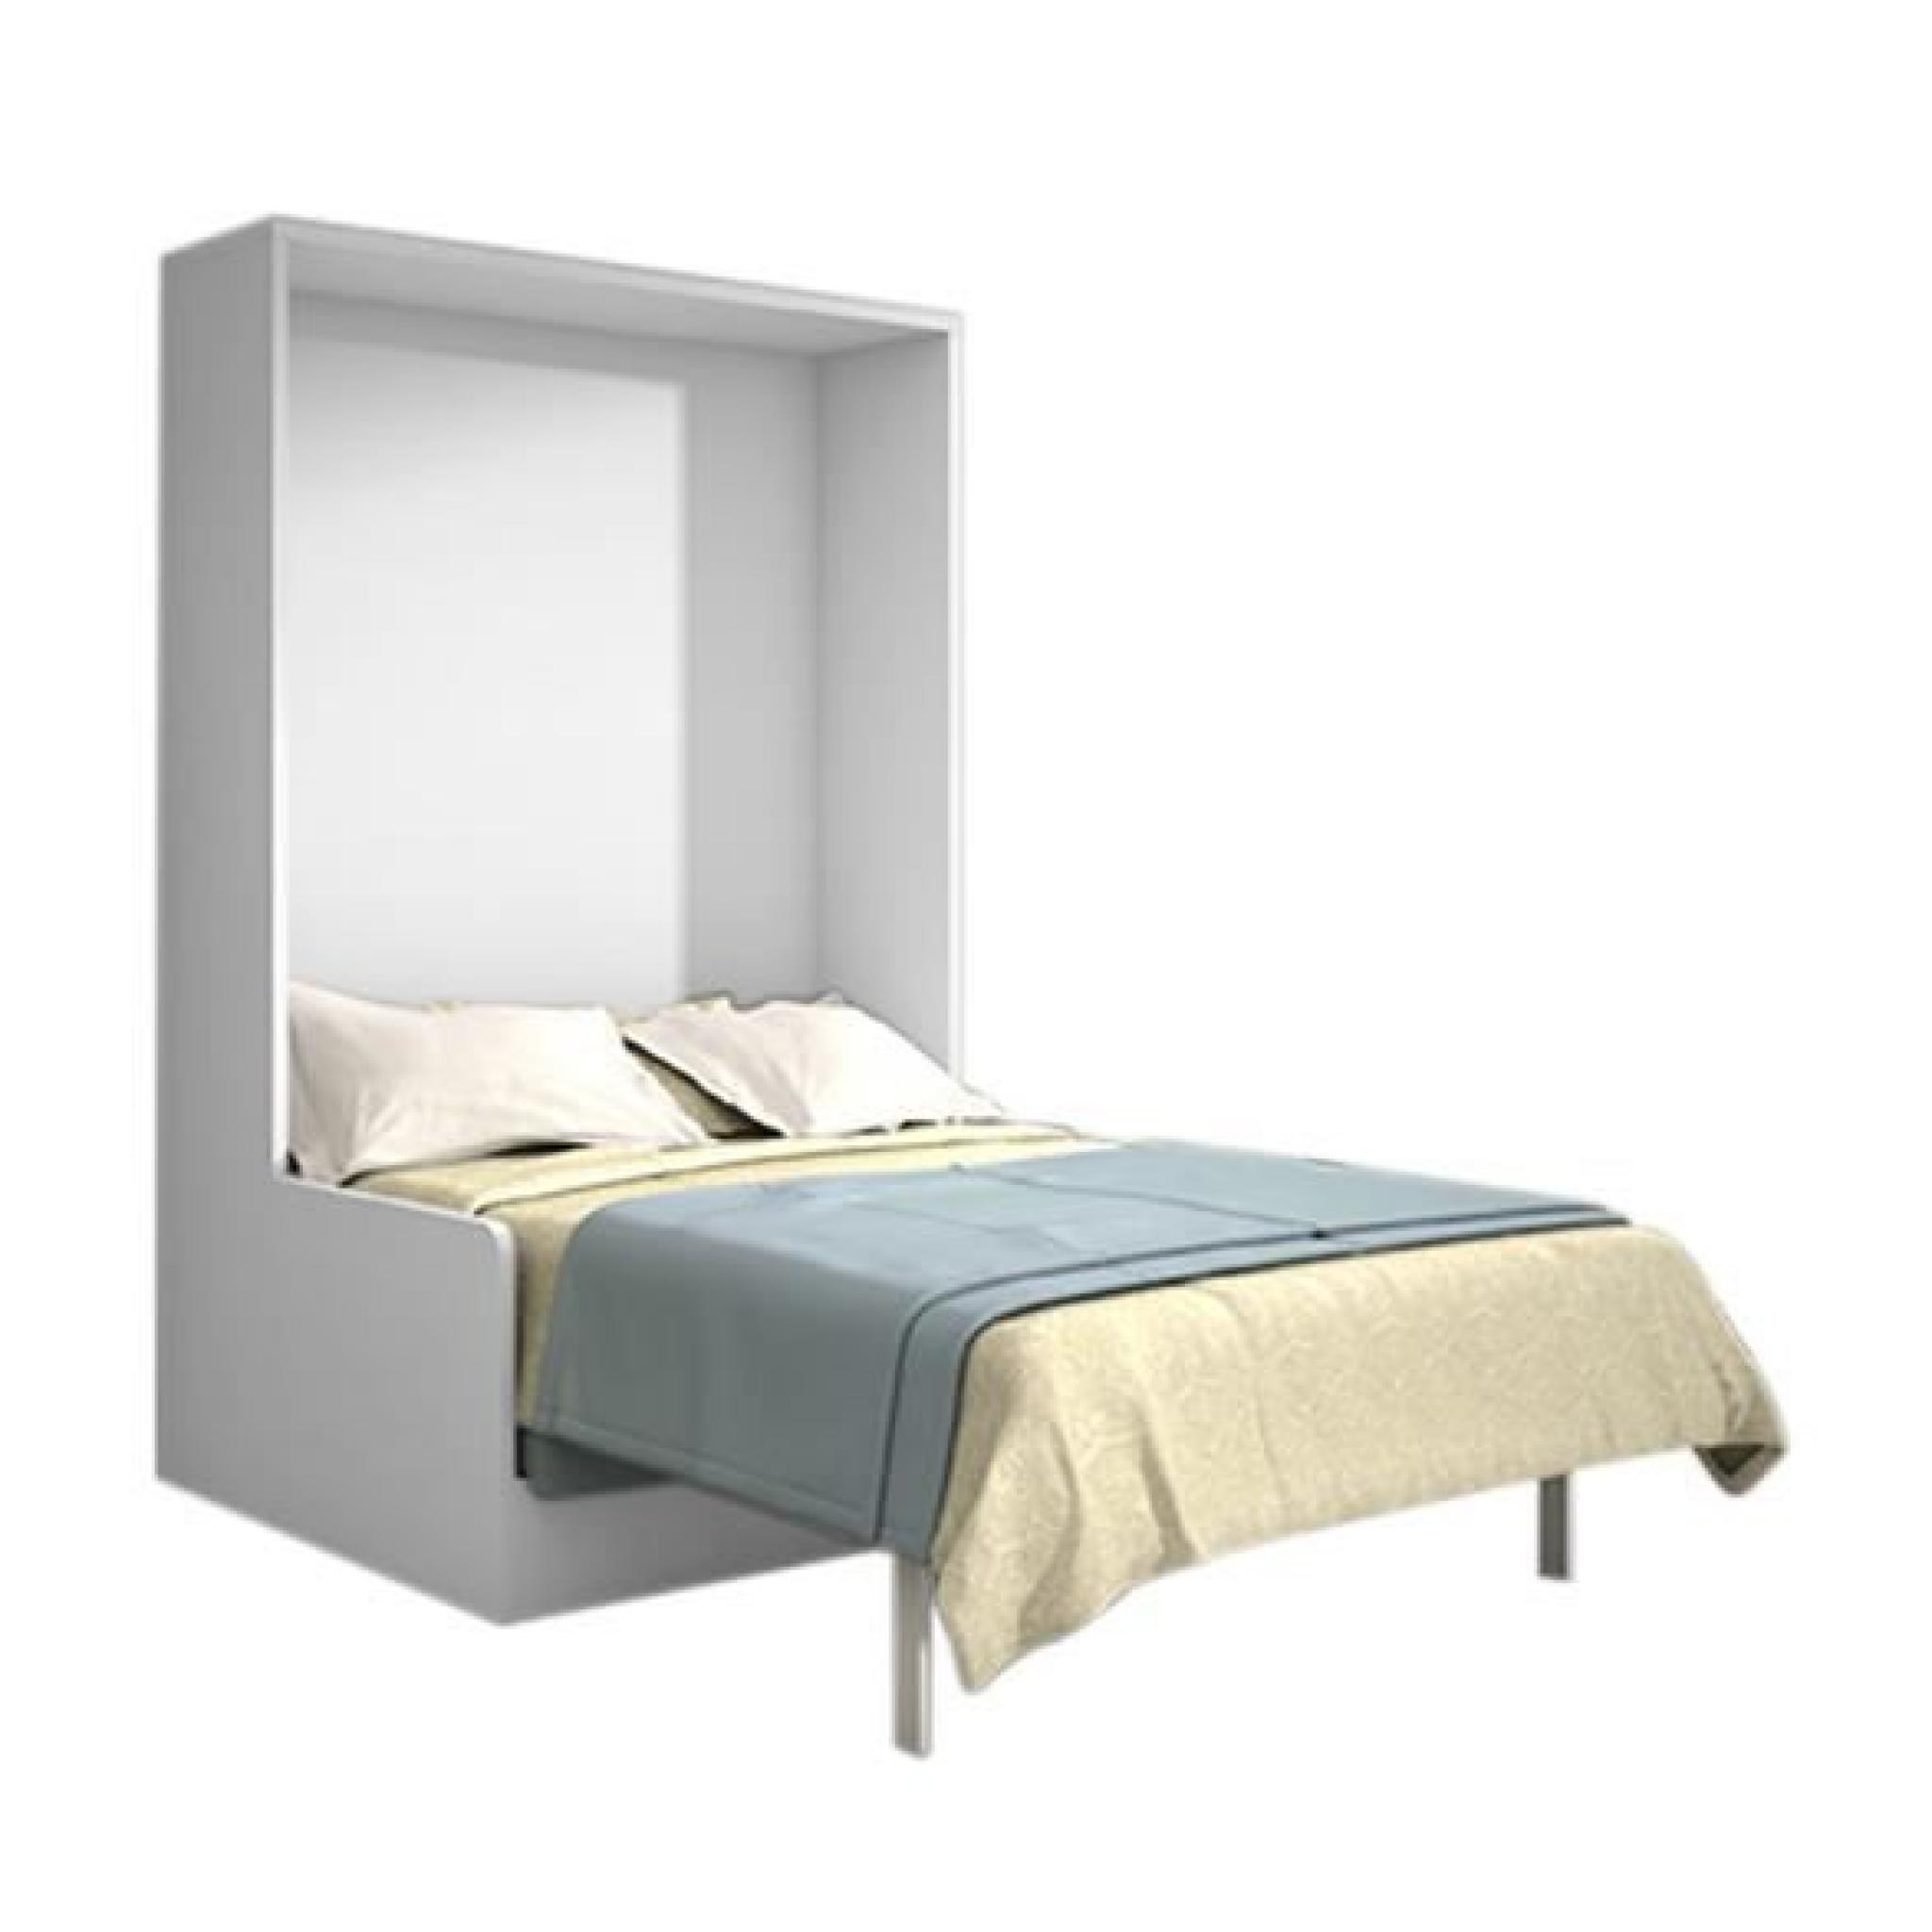 joy armoire lit 140x200 ch ne blanc avec canap achat. Black Bedroom Furniture Sets. Home Design Ideas